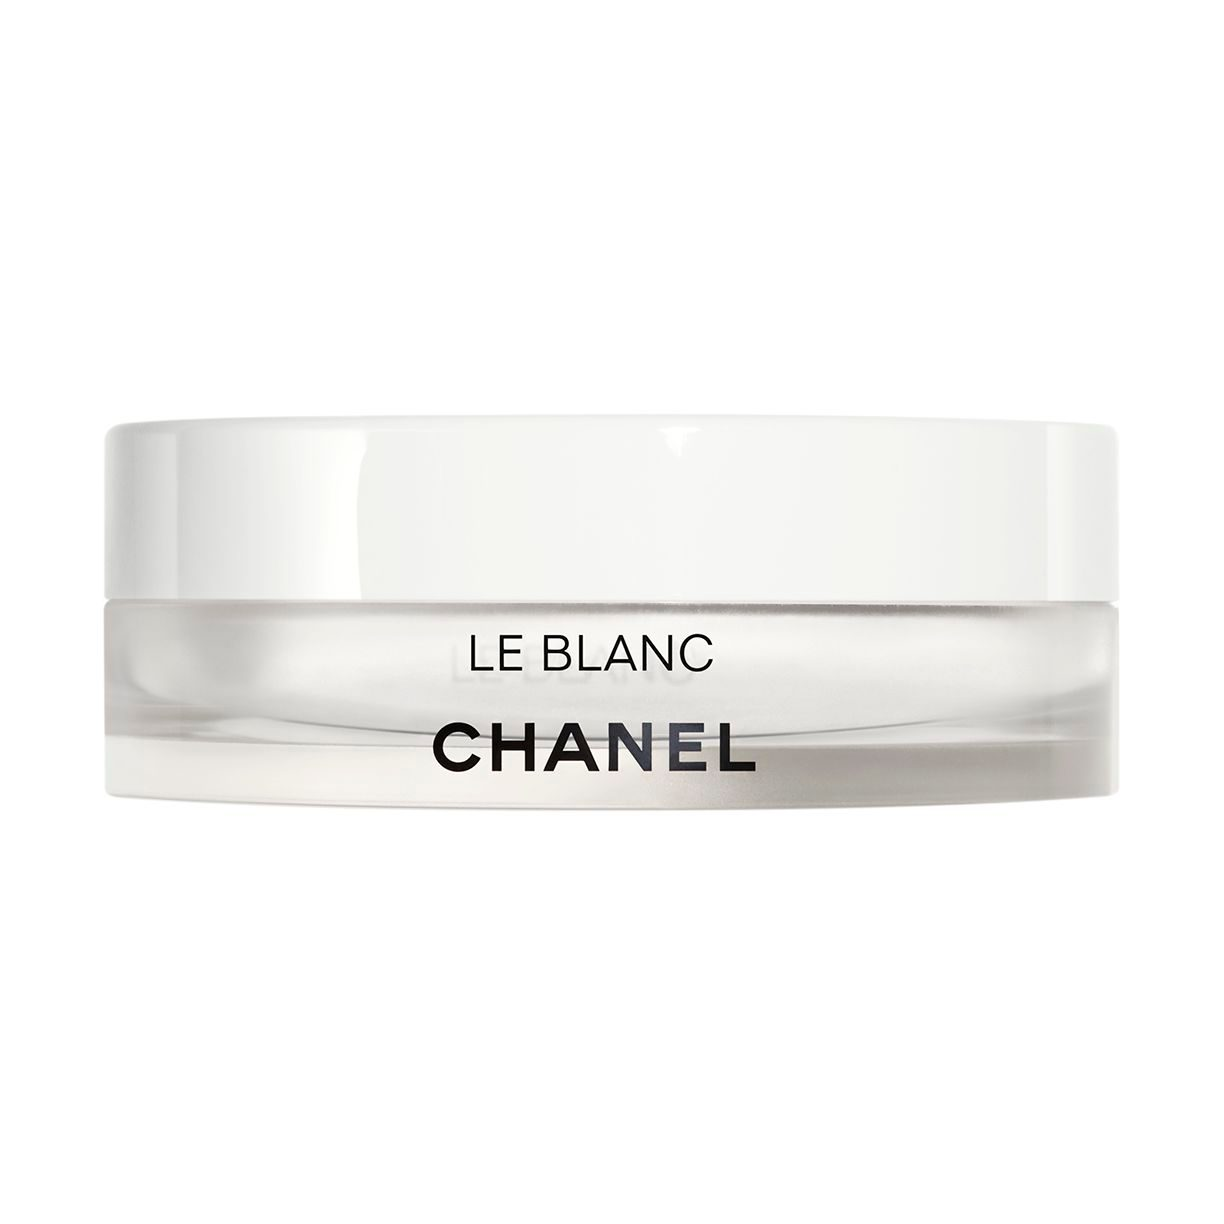 LE BLANC PEARL LIGHT BRIGHTENING LOOSE POWDER SPF 10 / PA+